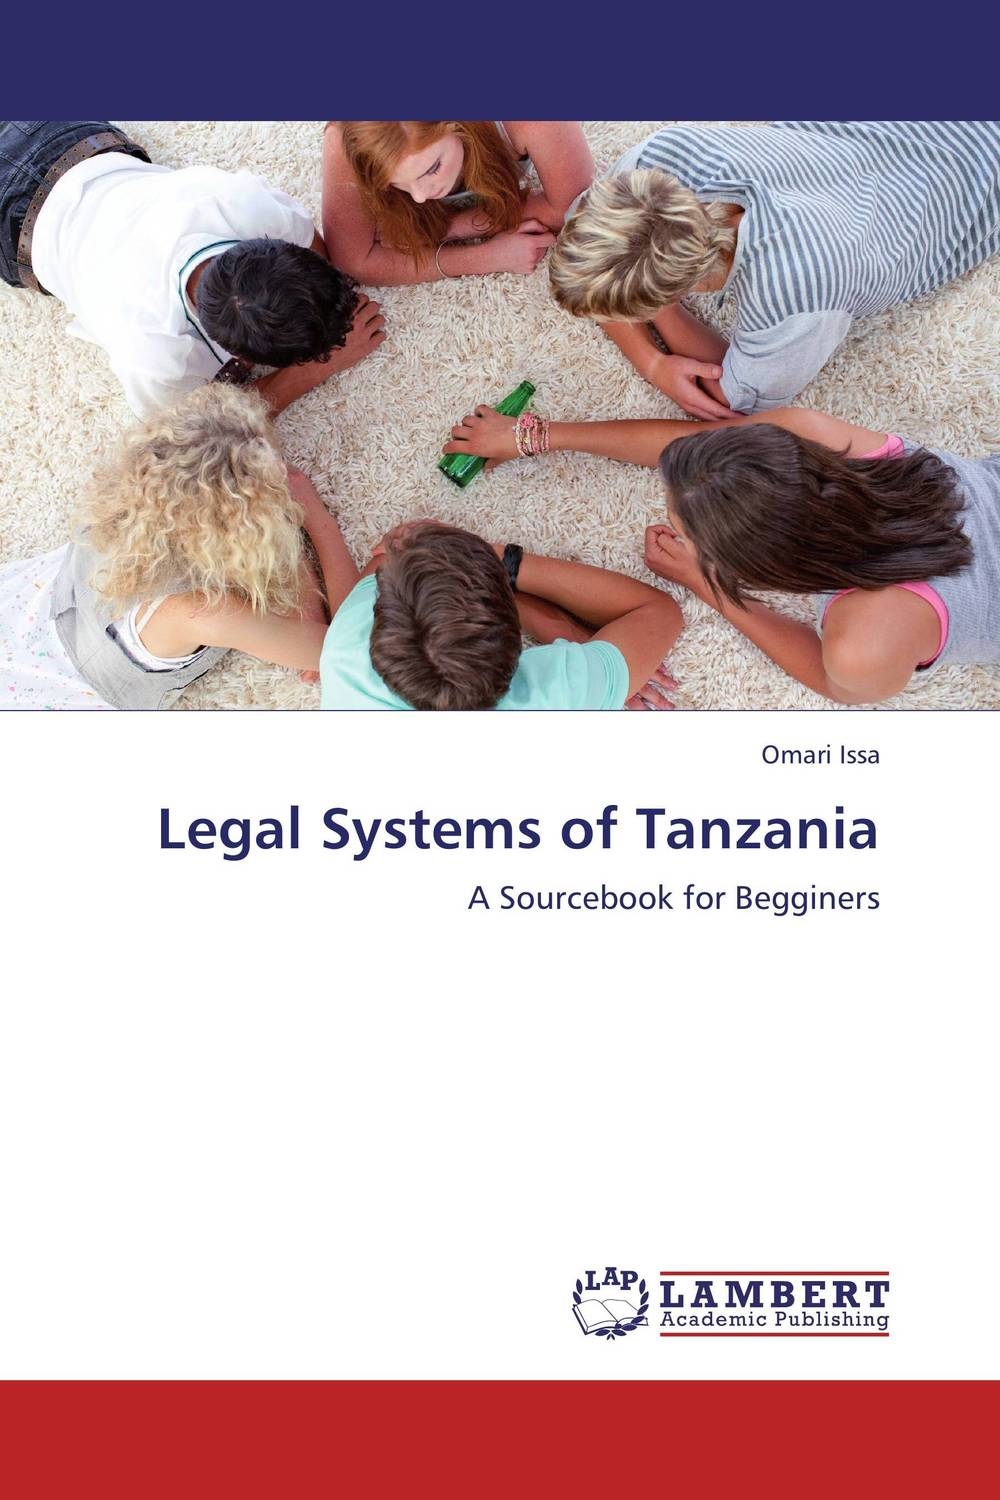 Legal Systems of Tanzania legal systems of the contemporary world monograph